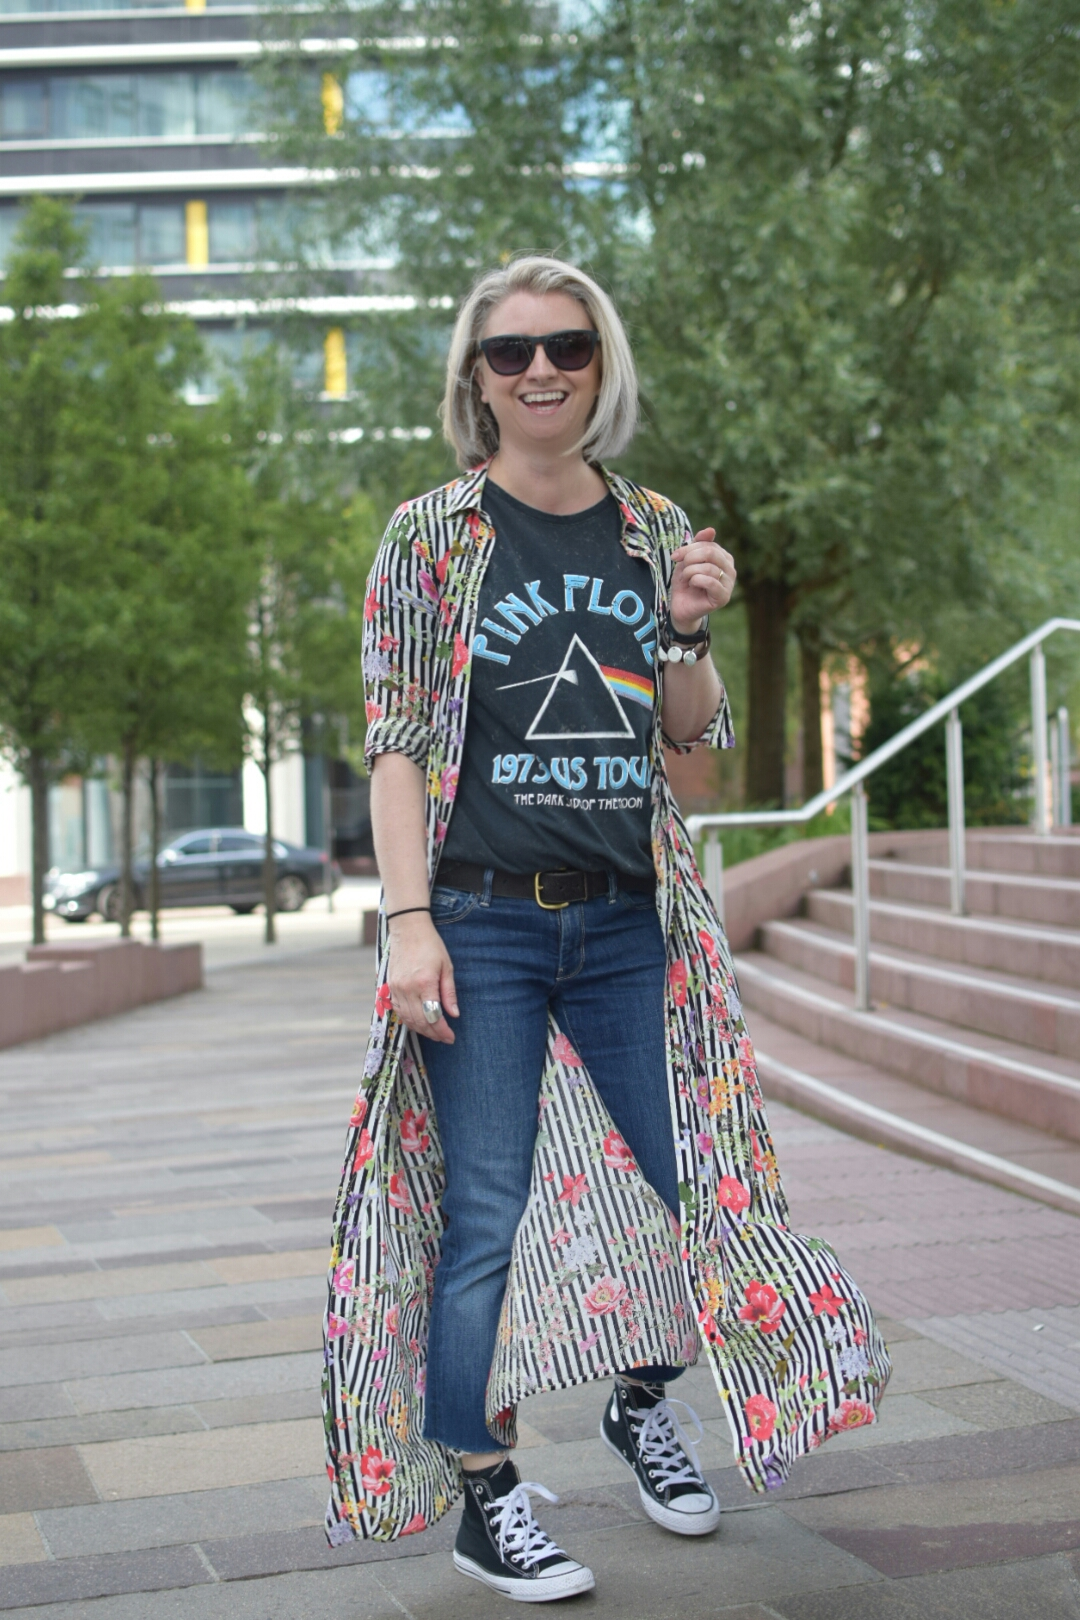 Zara Floral A-Line Dress, Pink Floyd Band Tee, 7ForAllMankind Jeans and Black Hi-Tops Converse.